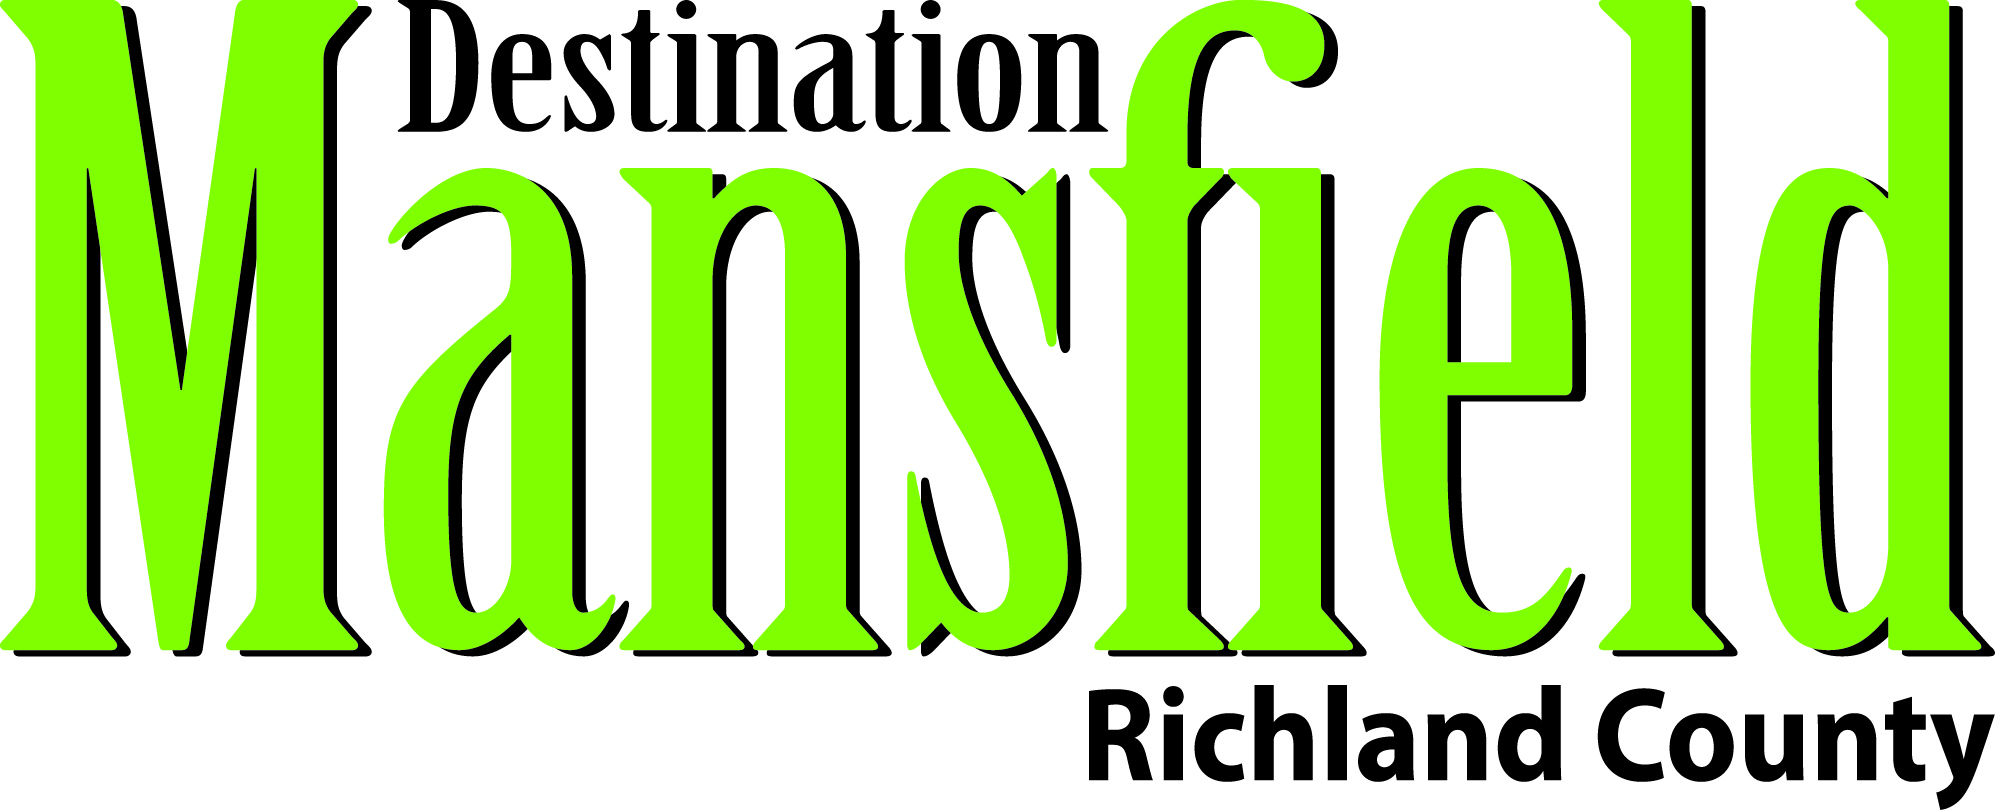 Destination Mansfield – Richland County